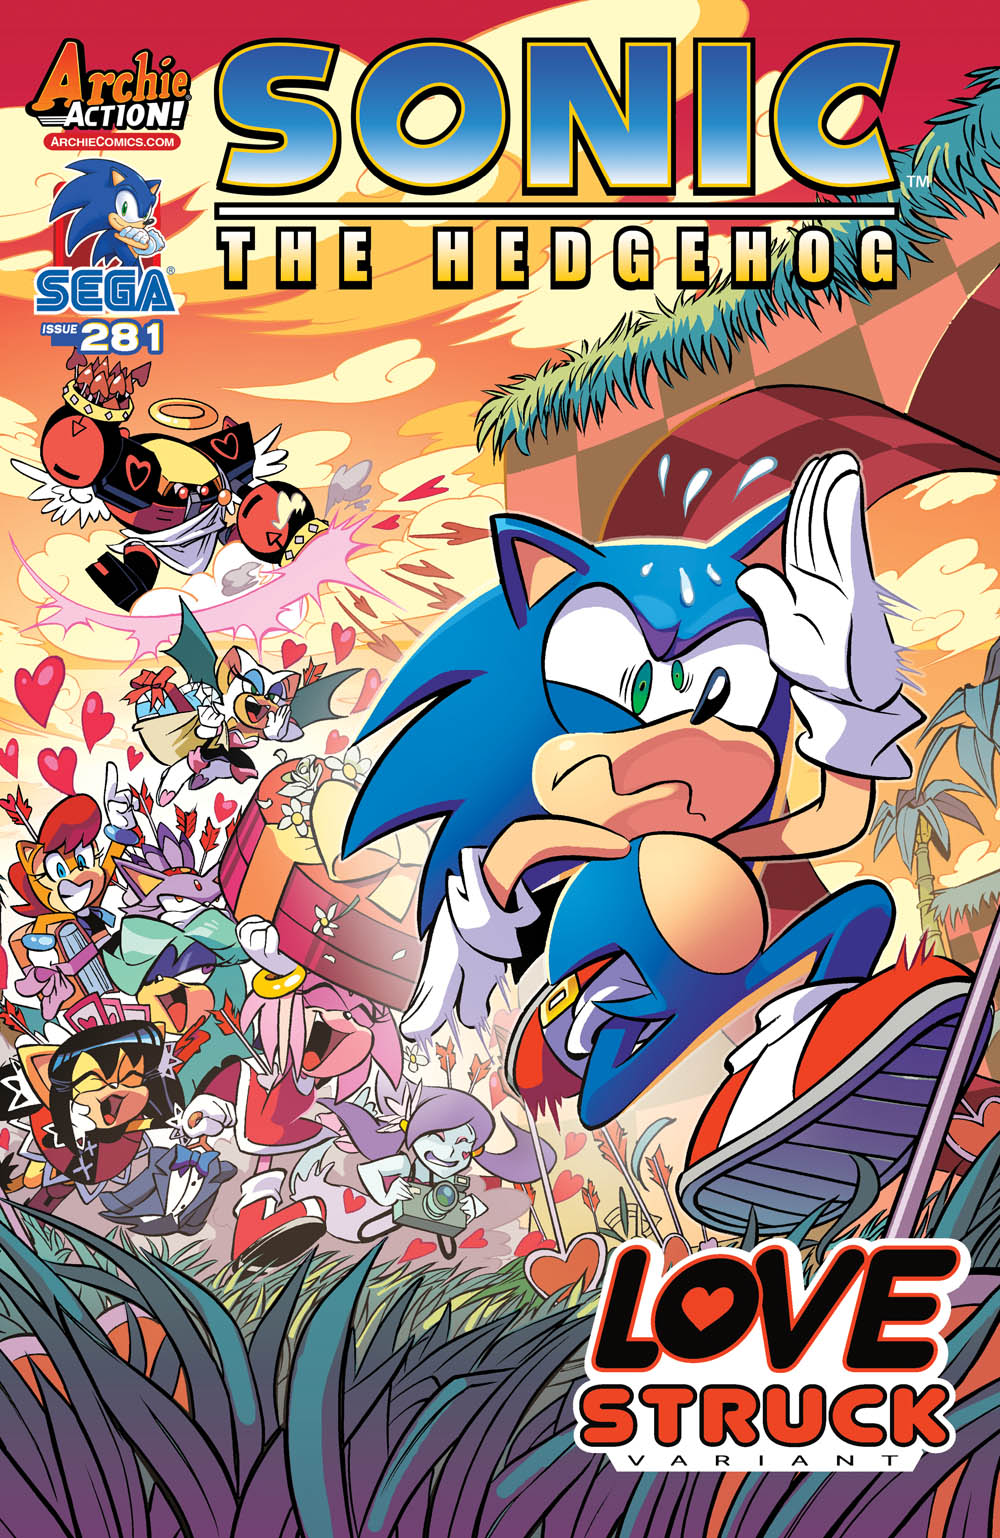 This variant of  Sonic  #281 was supposed to be out on 2/10 for Valentine's Day, but #279 is currently slated for 2/24.